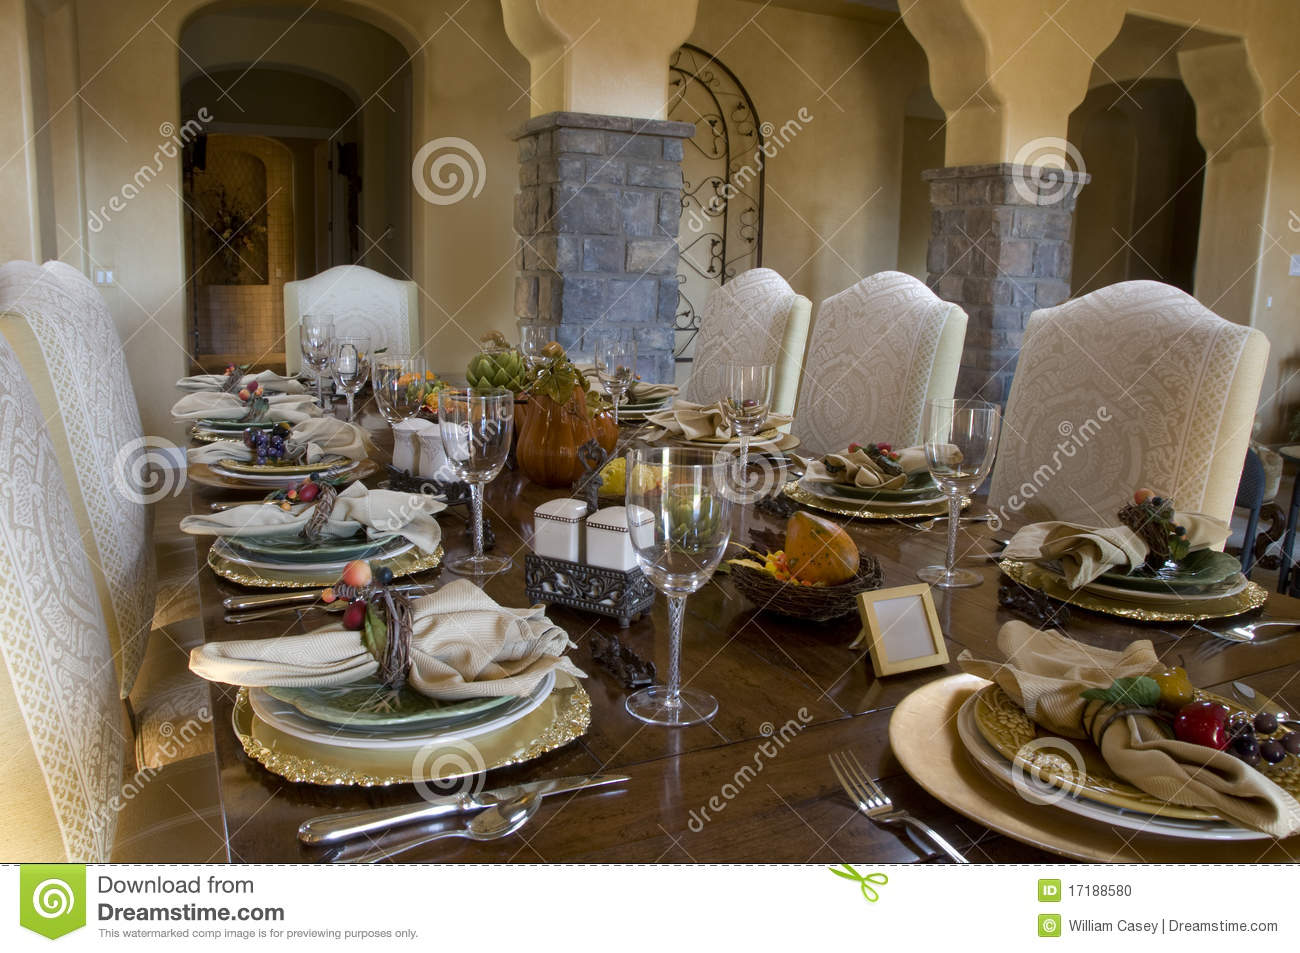 Dining Room Table Set For Dinner how to set dining table for a formal dinner | mpfmpf almirah